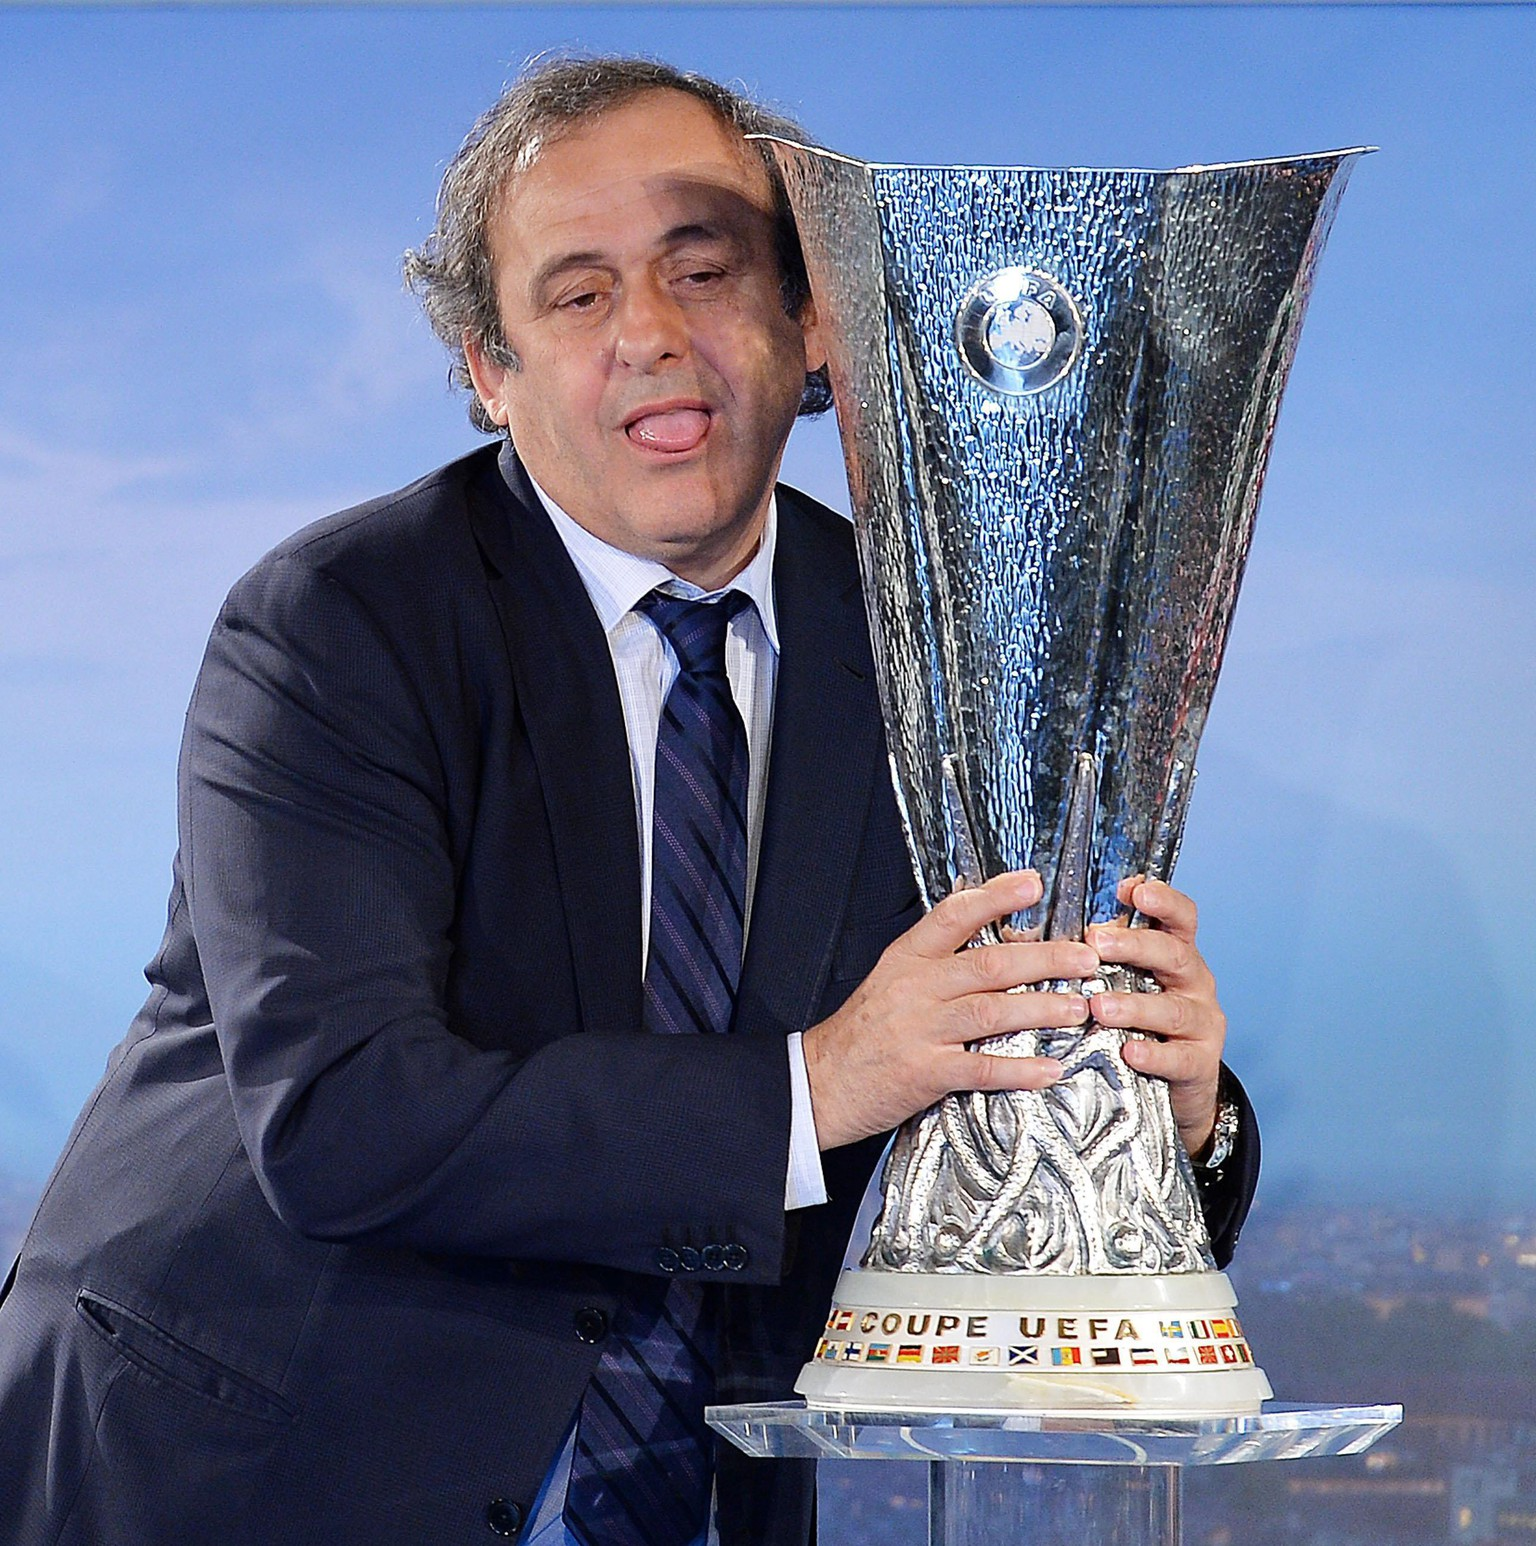 epa04168991 UEFA's President Michel Platini lifts the UEFA Europa League Cup, during its presentation in Turin, Italy, 16 April 2014. The UEFA Europa League final match will be played at the Juventus Stadium in Turin, on 14 May 2014.  EPA/ALESSANDRO DI MARCO